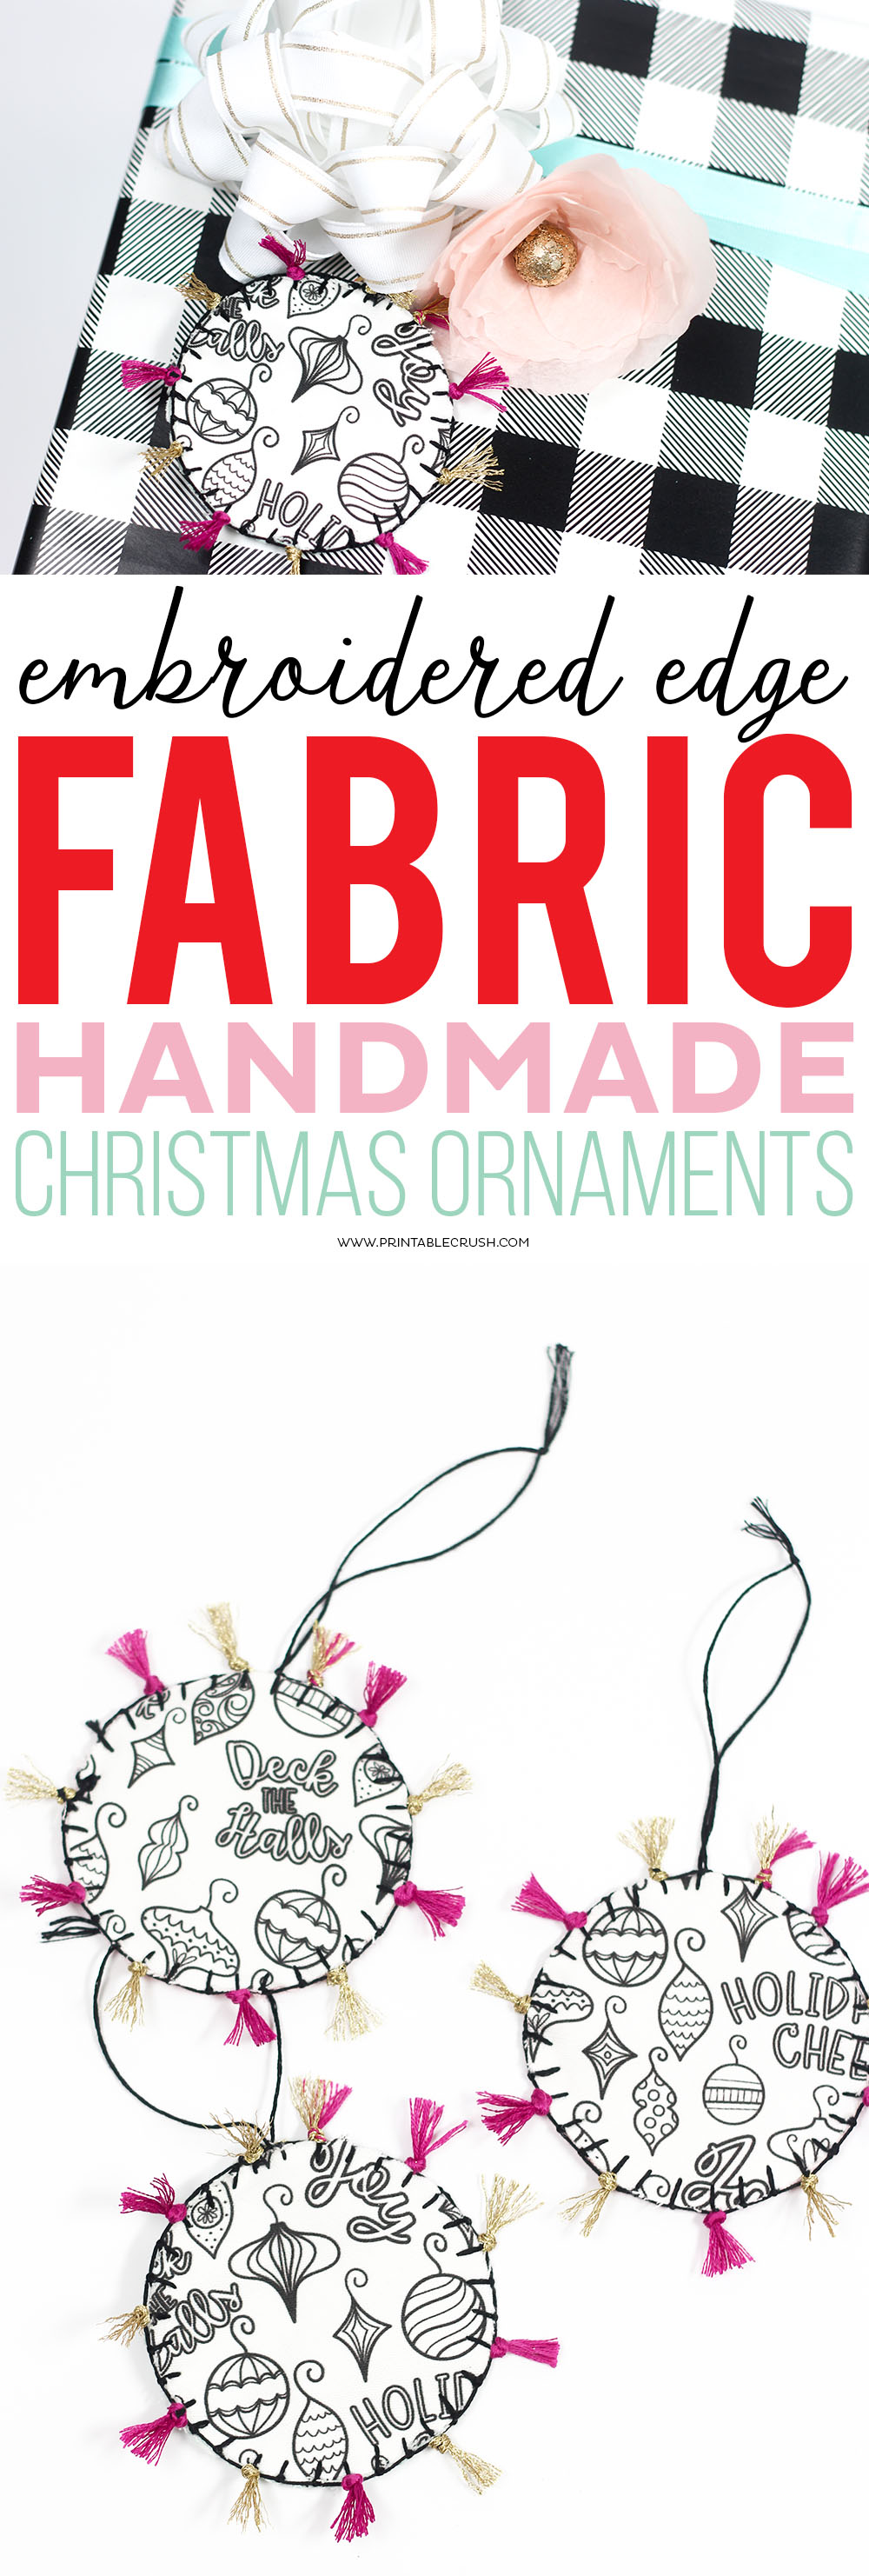 These FabricHandmade Christmas Ornaments and gift tags areadorable! Learn how to give them an embroidered edge. They're incredibly easy to make!